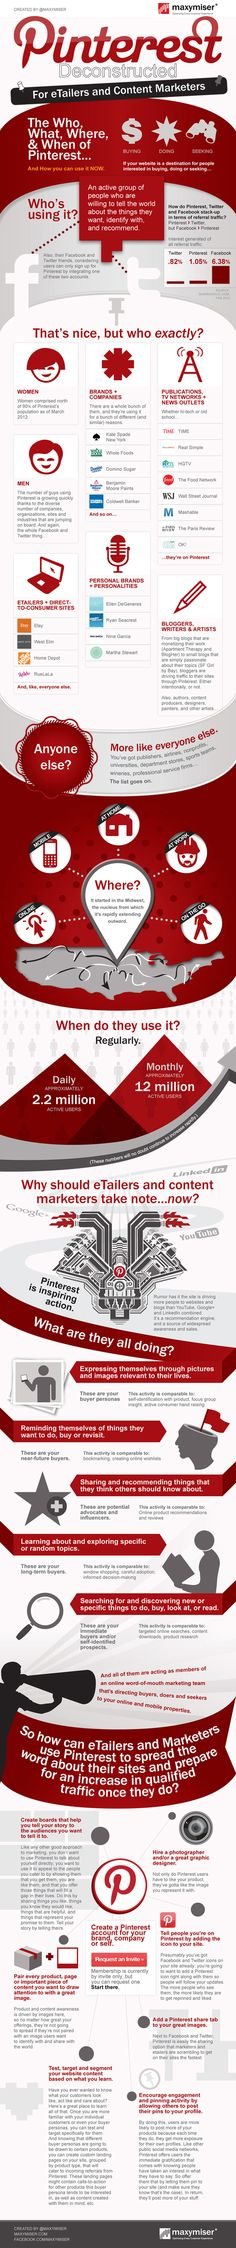 Pinterest for Content Marketers [INFOGRAPHIC]